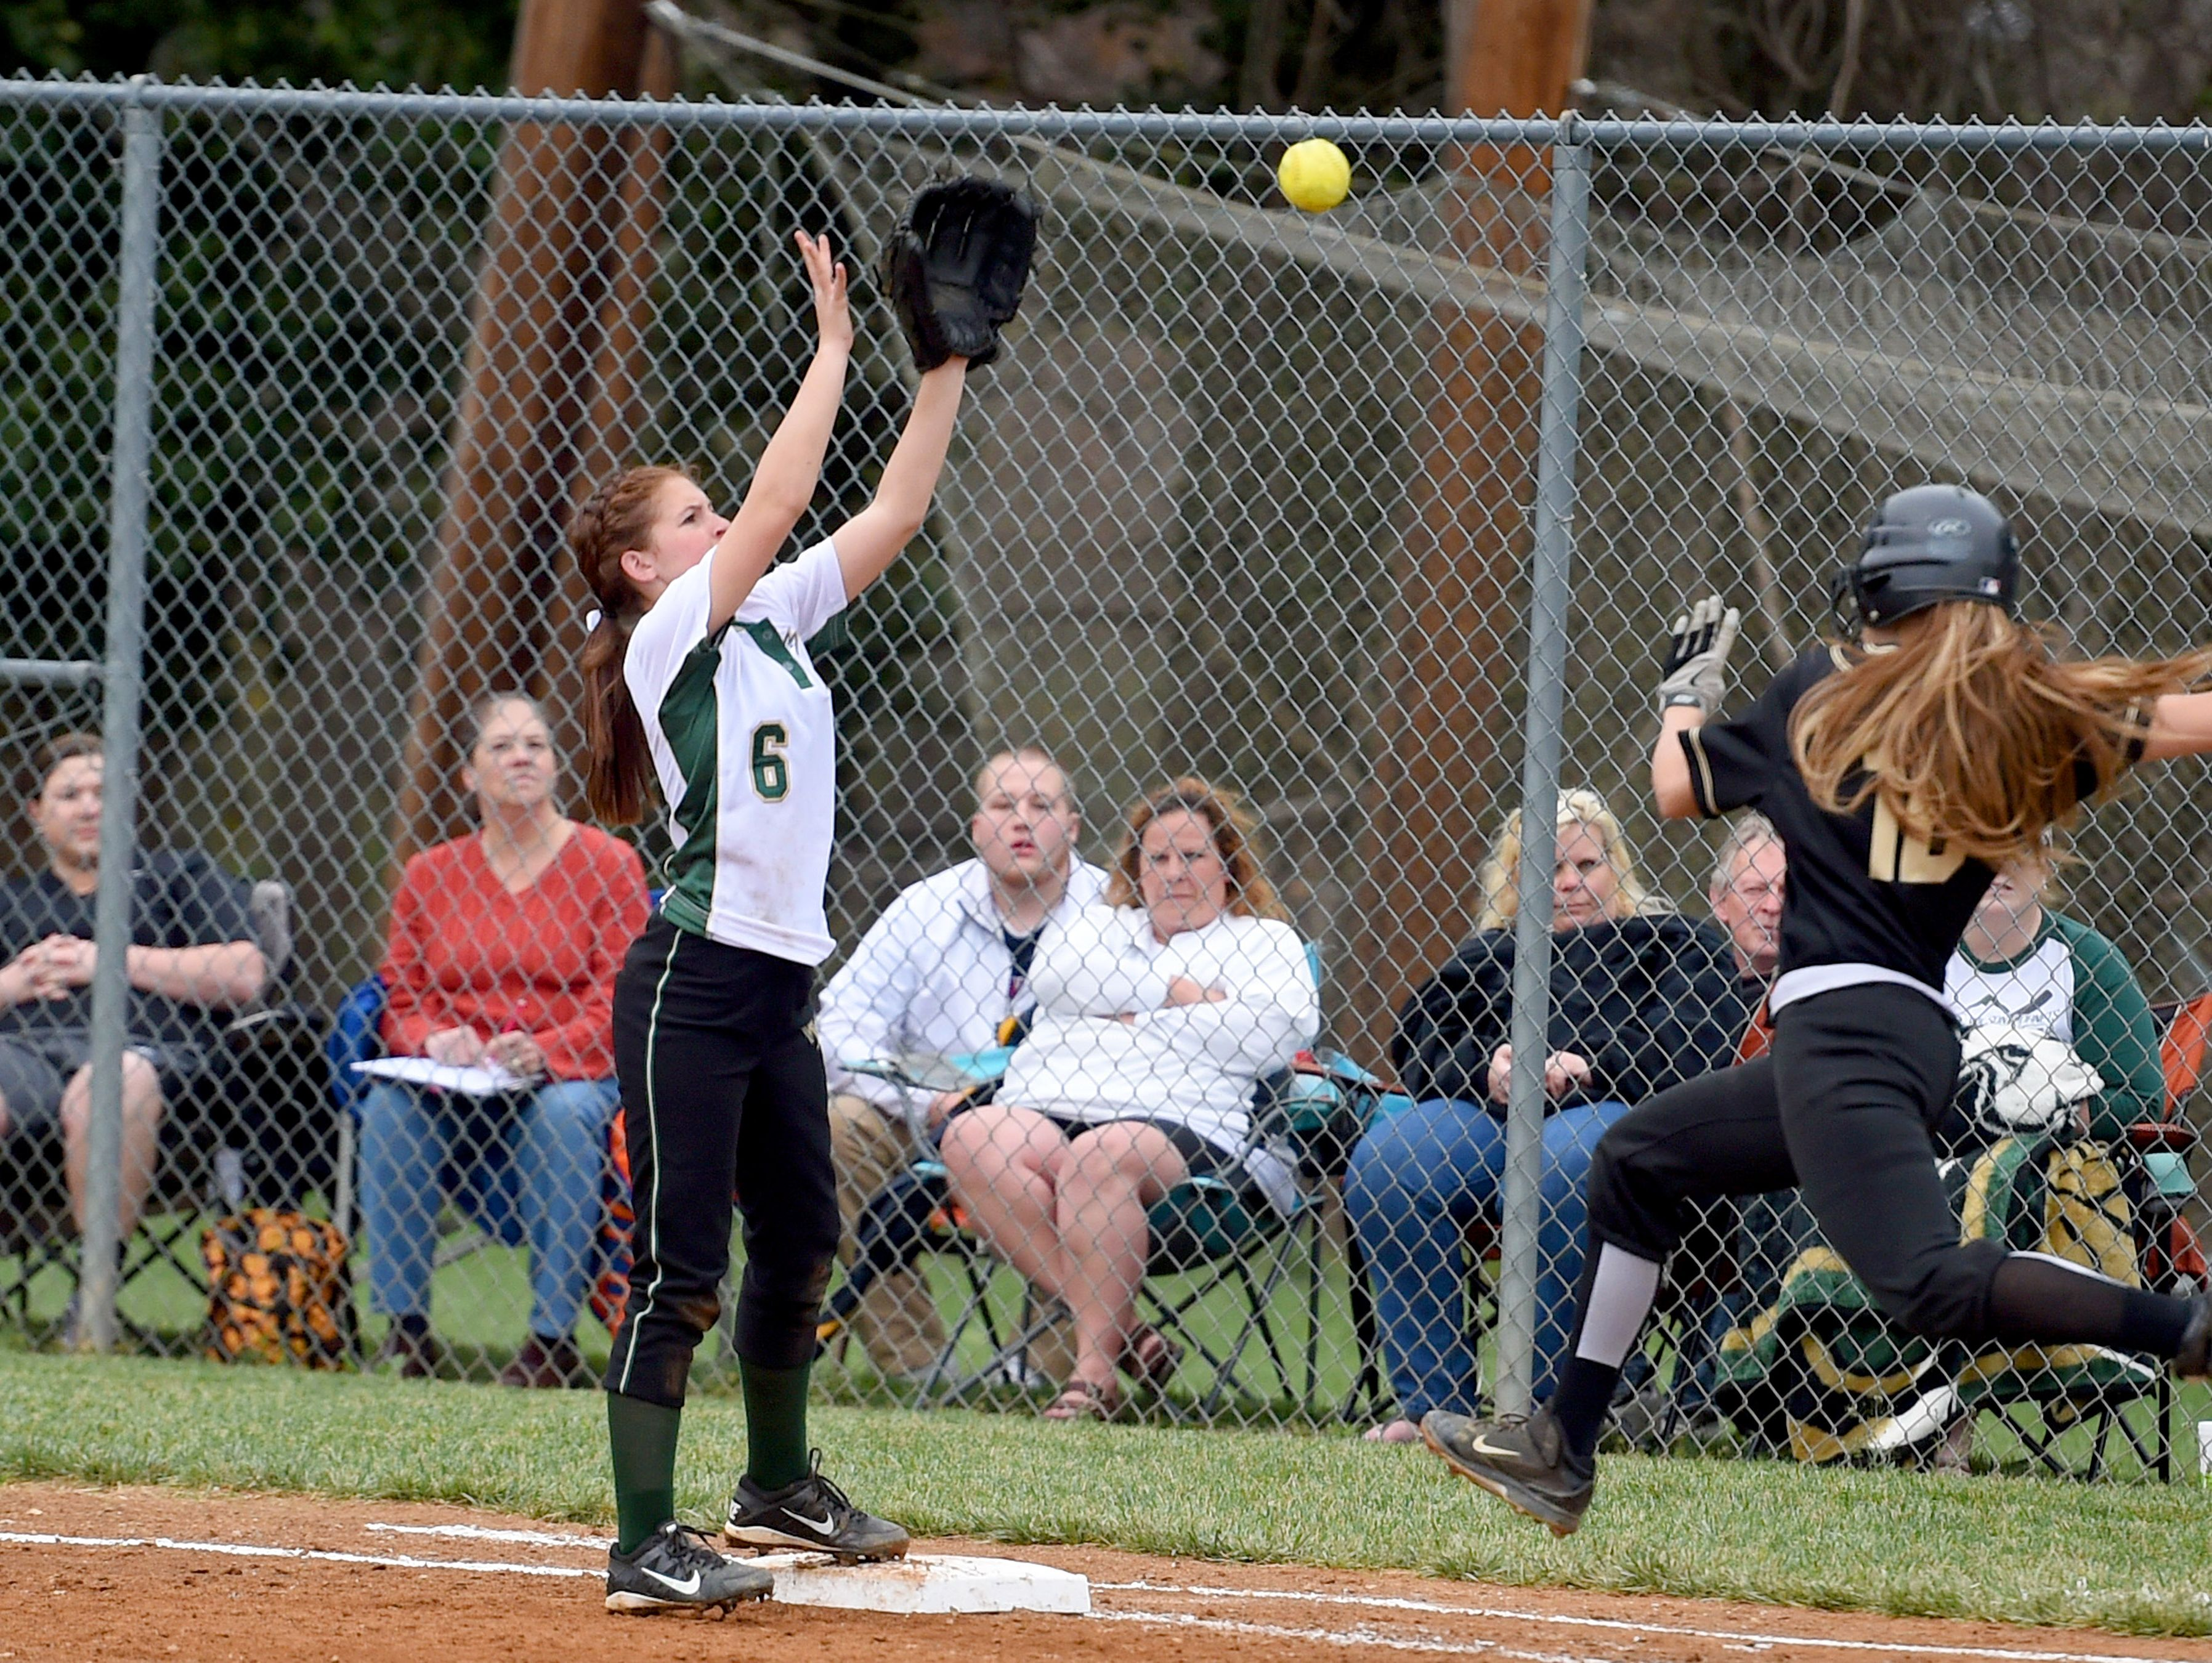 Wilson Memorial's Bri Meek catches the throw to tag out Buffalo Gap's Destiny Harper at first base after Harper bunted in the second inning during a softball game played in Fishersville on Friday, April 1, 2016.